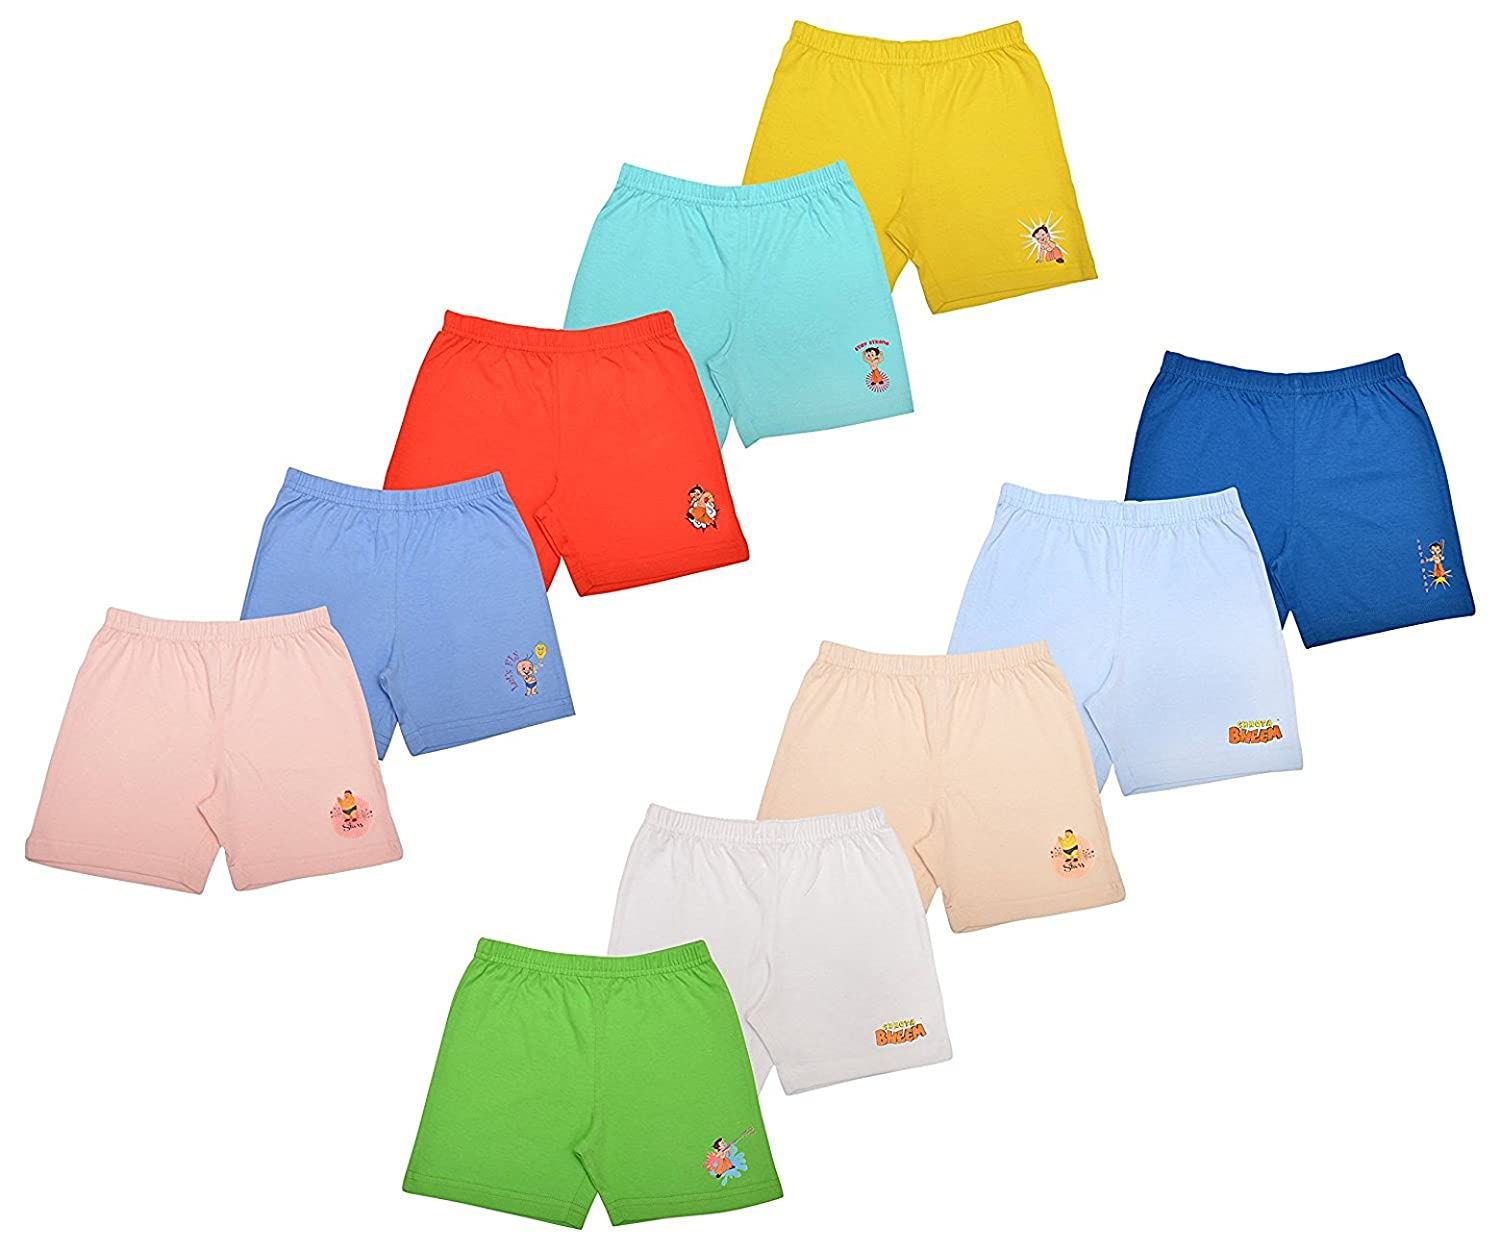 Chhota Bheem Baby Cotton Shorts for Baby Boy and Girl Pack of 10 LNLCHSHT027